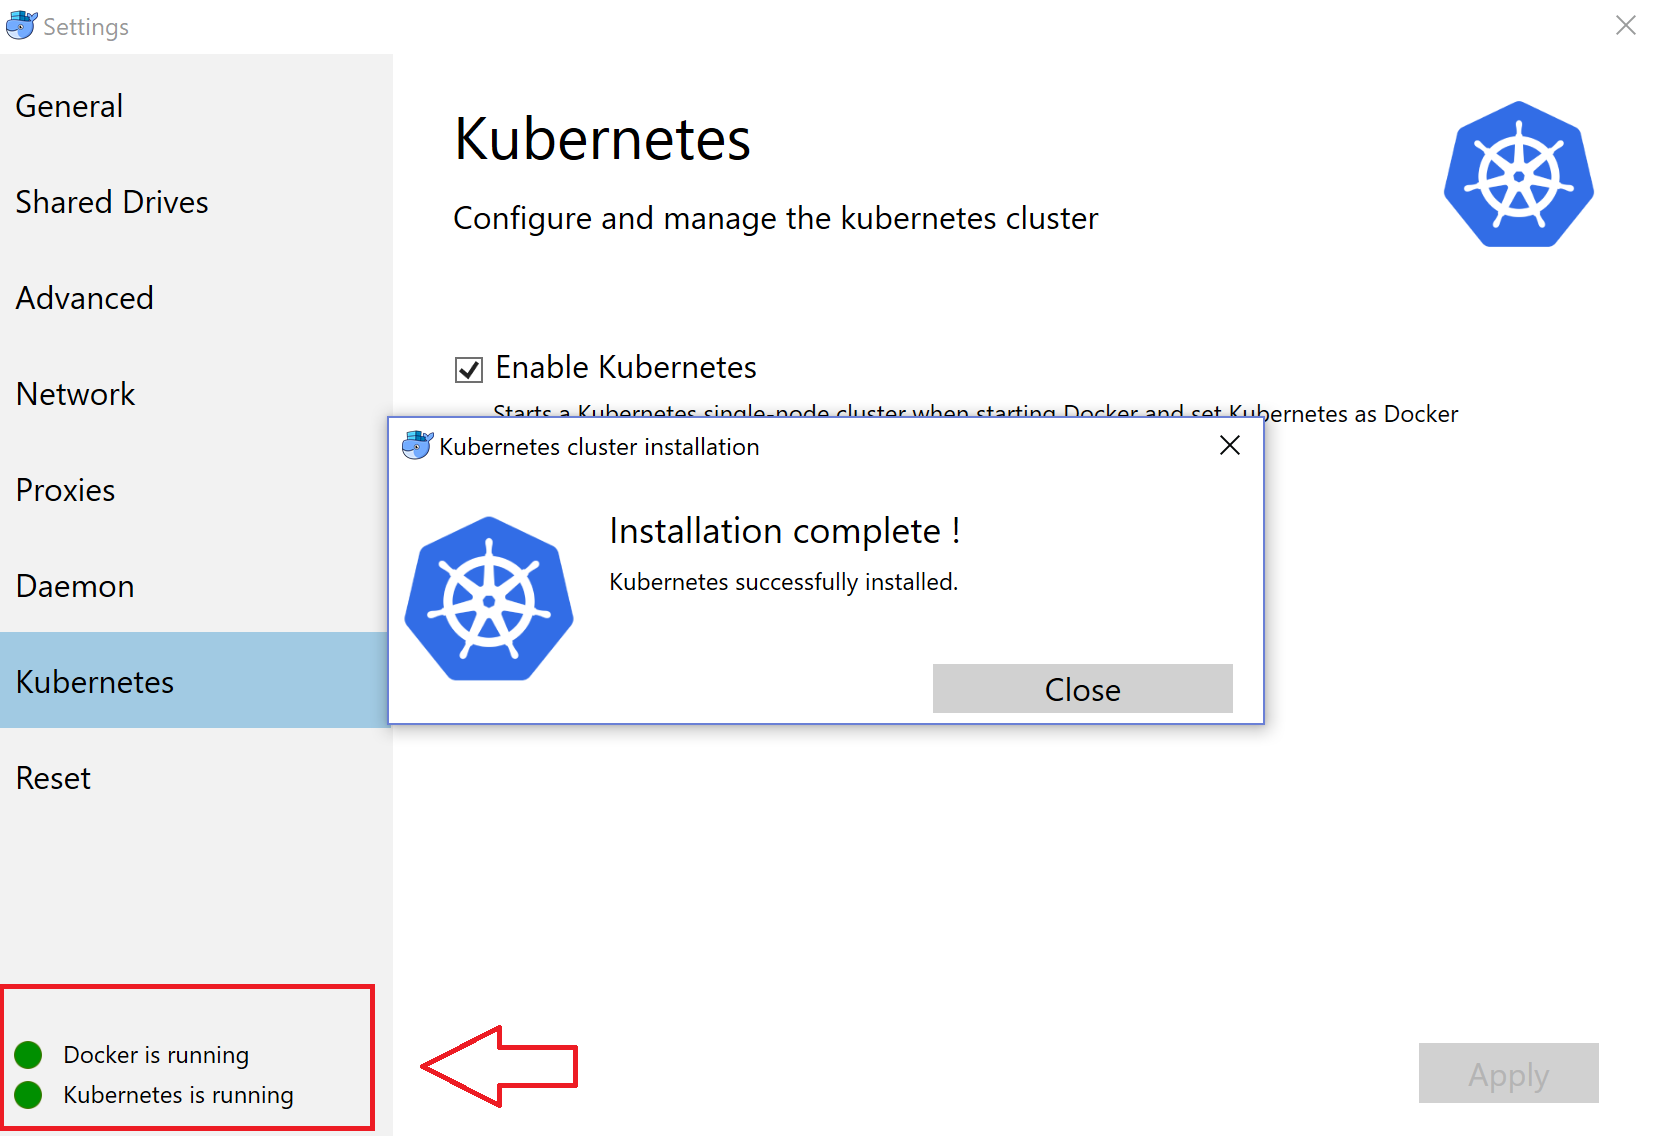 Deploying Containers on #Kubernetes Cluster in #Docker for Windows